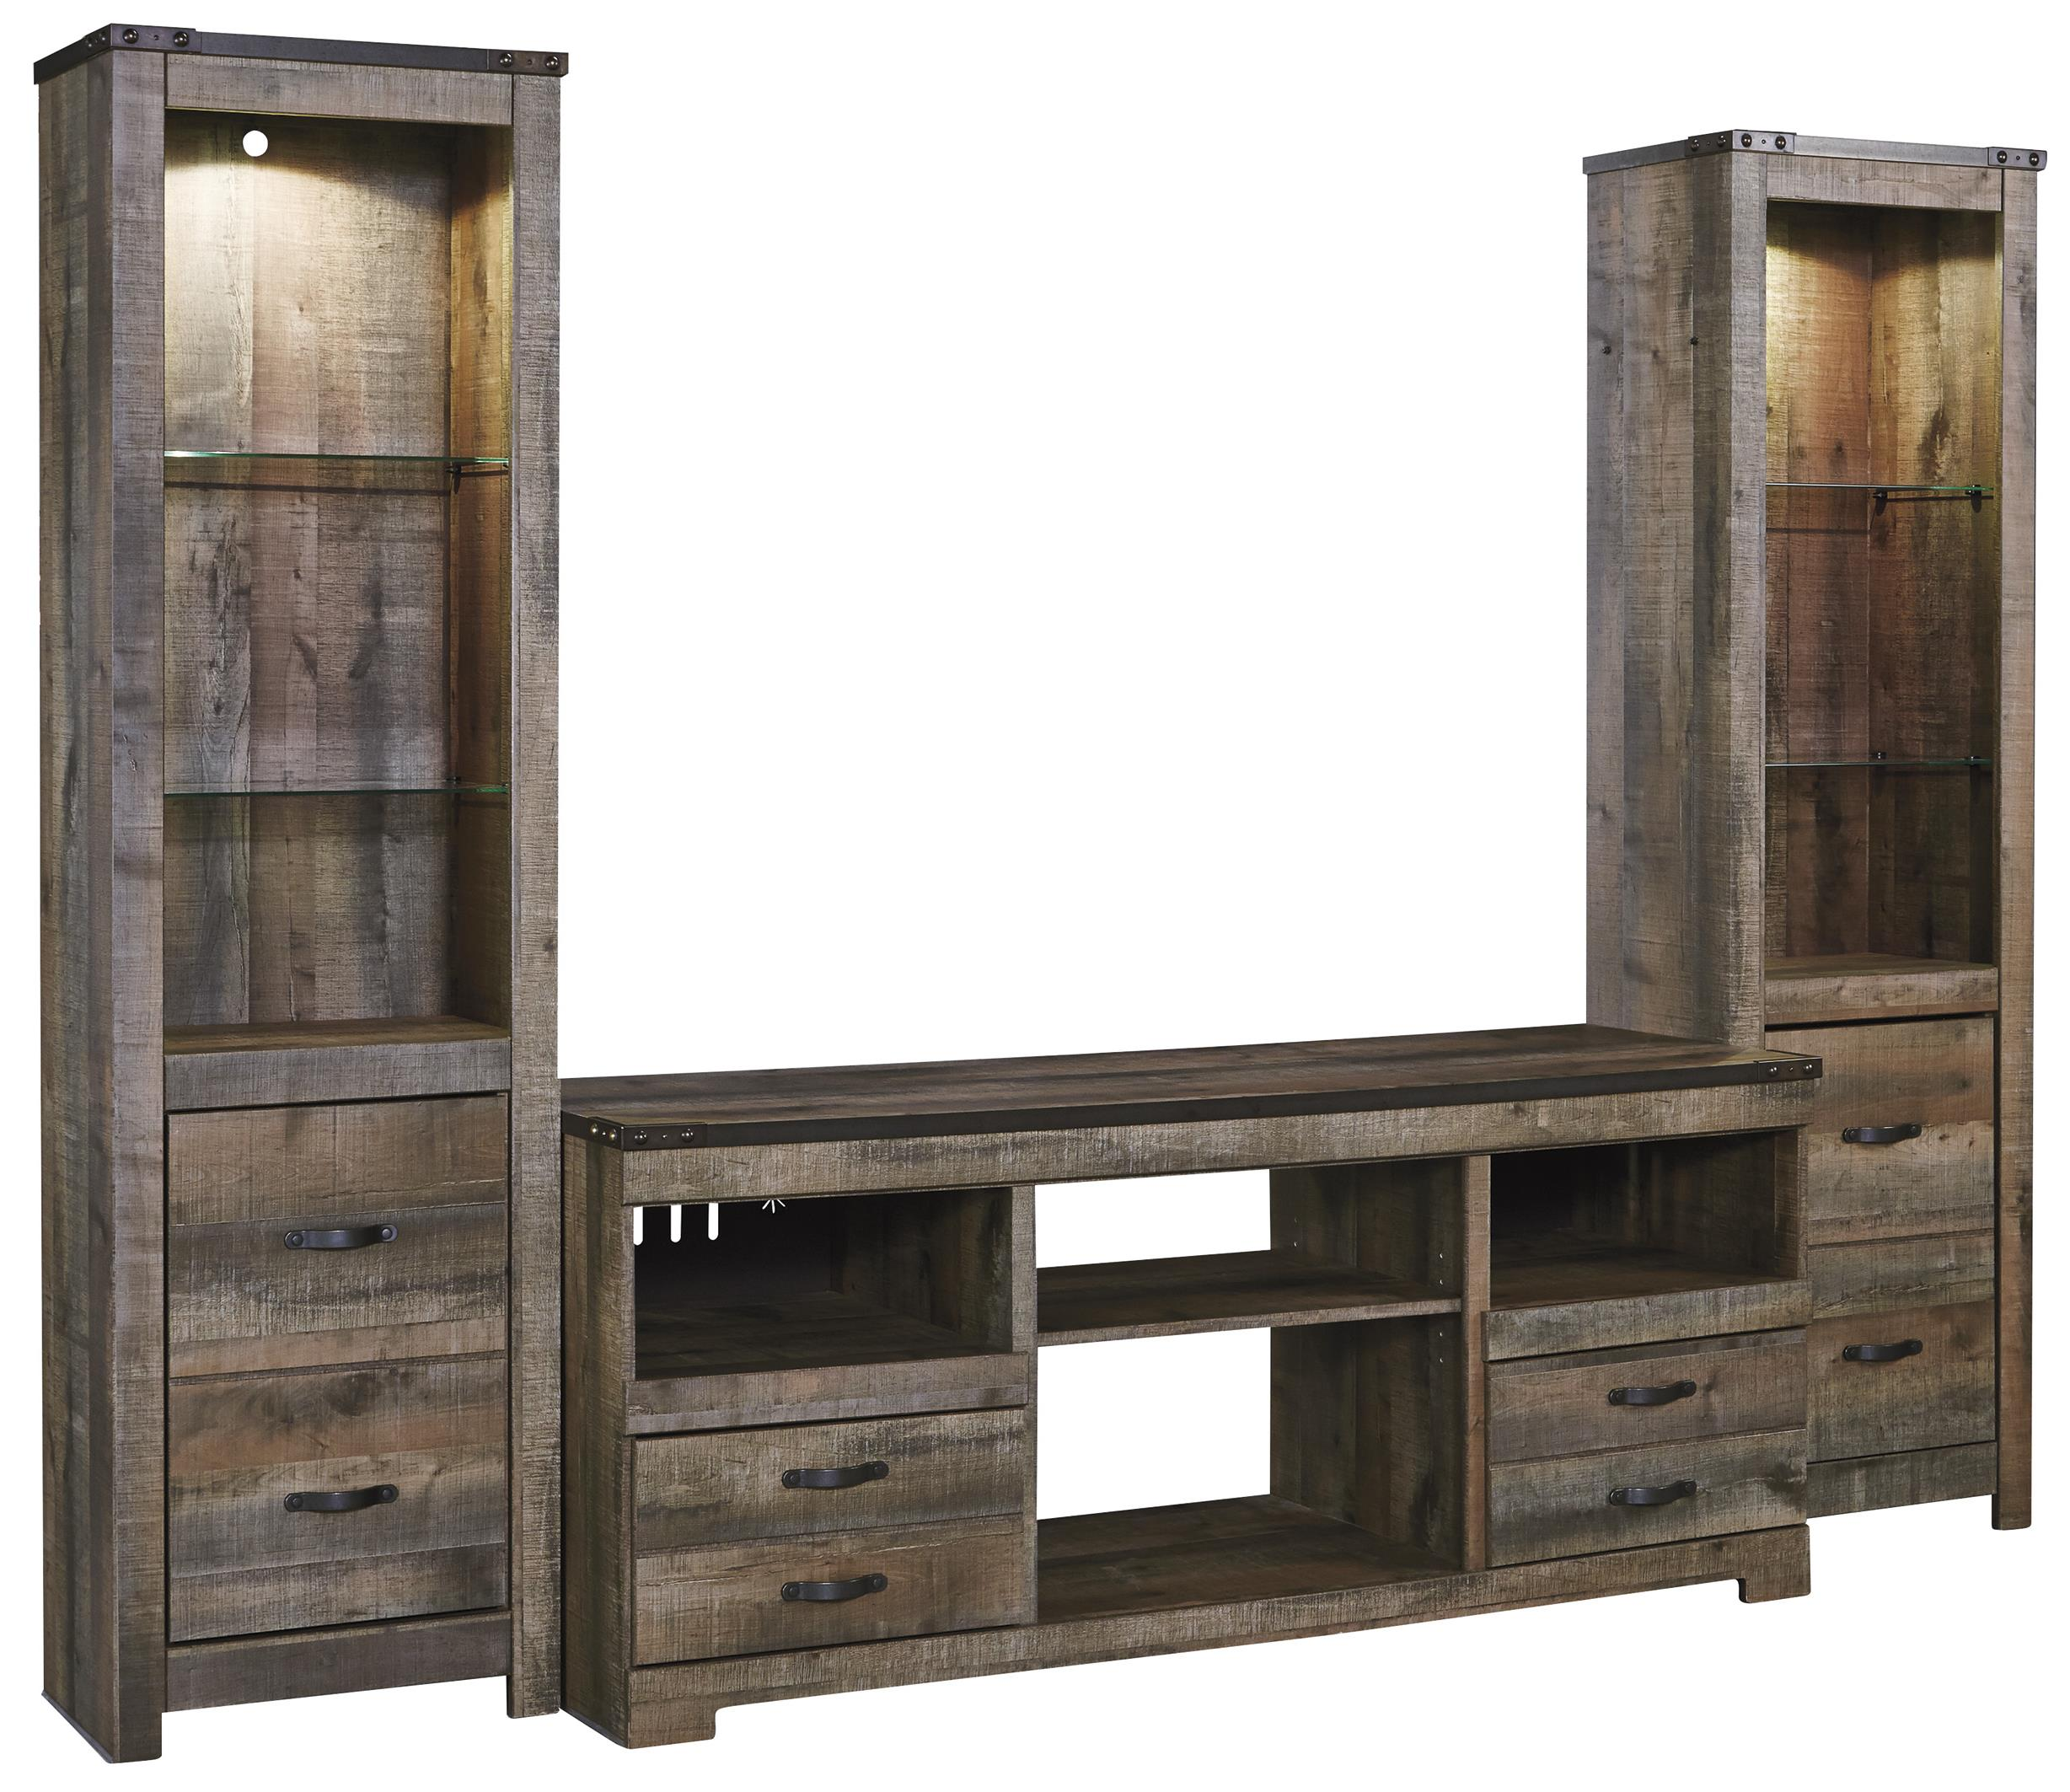 Signature Design by Ashley Trinell Large TV Stand & 2 Tall Piers - Item Number: W446-68+2x24